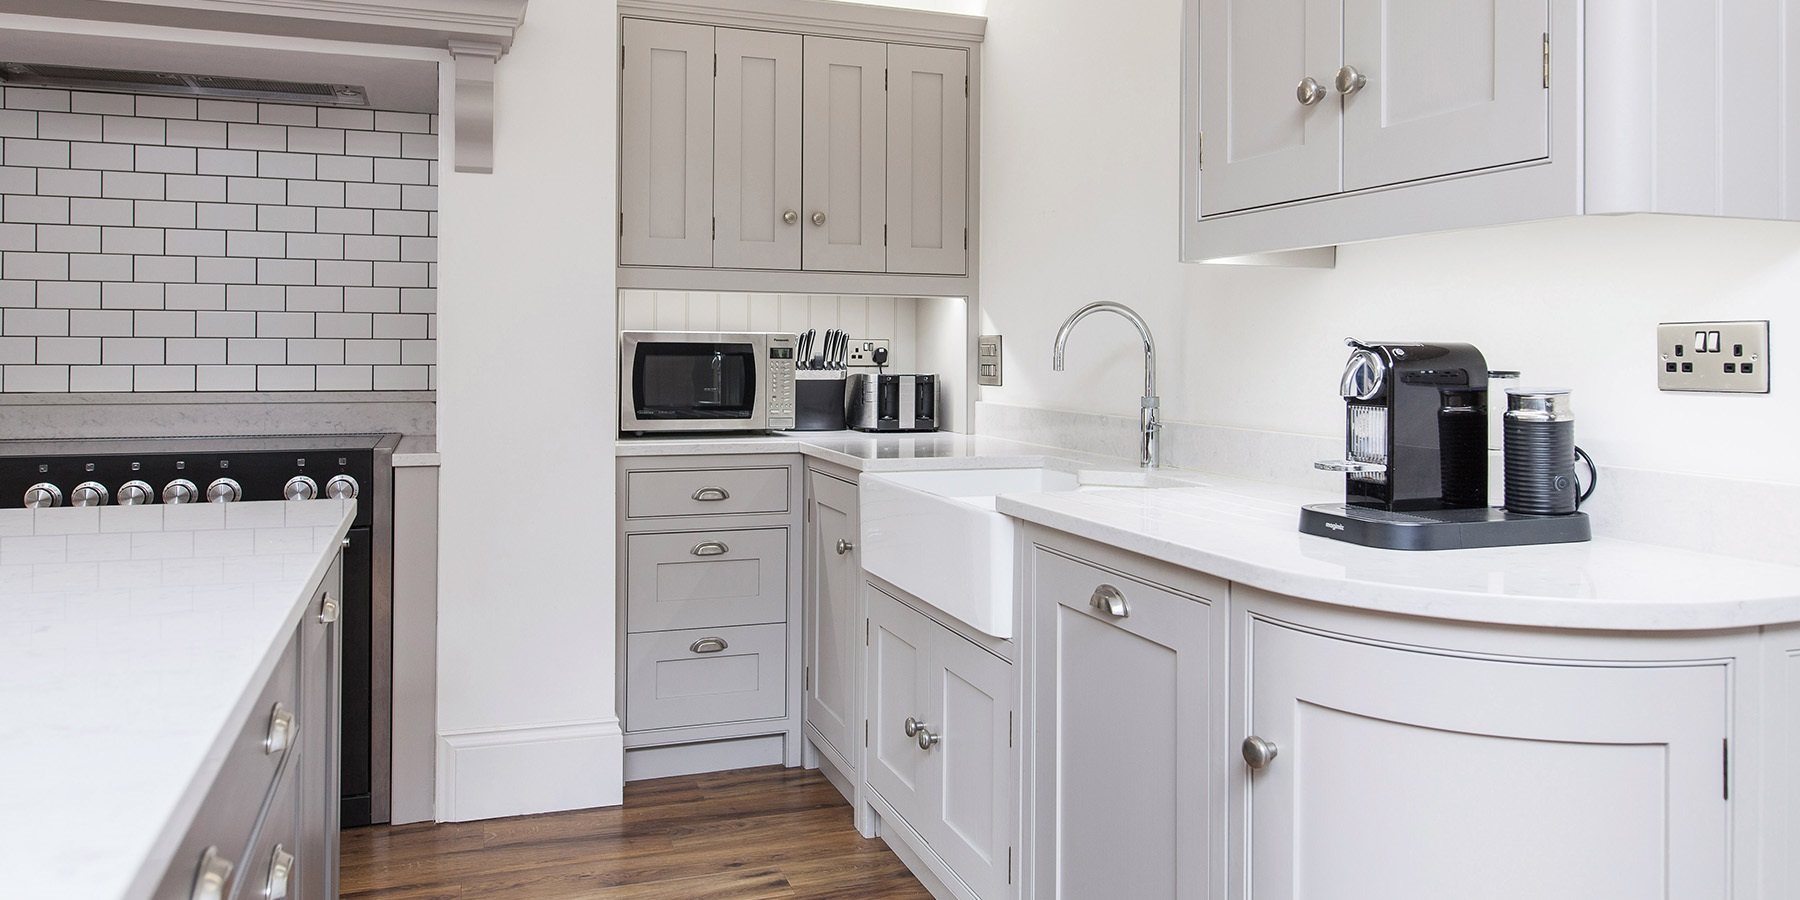 Bespoke Shaker Kitchen - Burlanes handmade grey Wellsdown kitchen with white worktops, double Belfast sink and white metro splashback tiles.